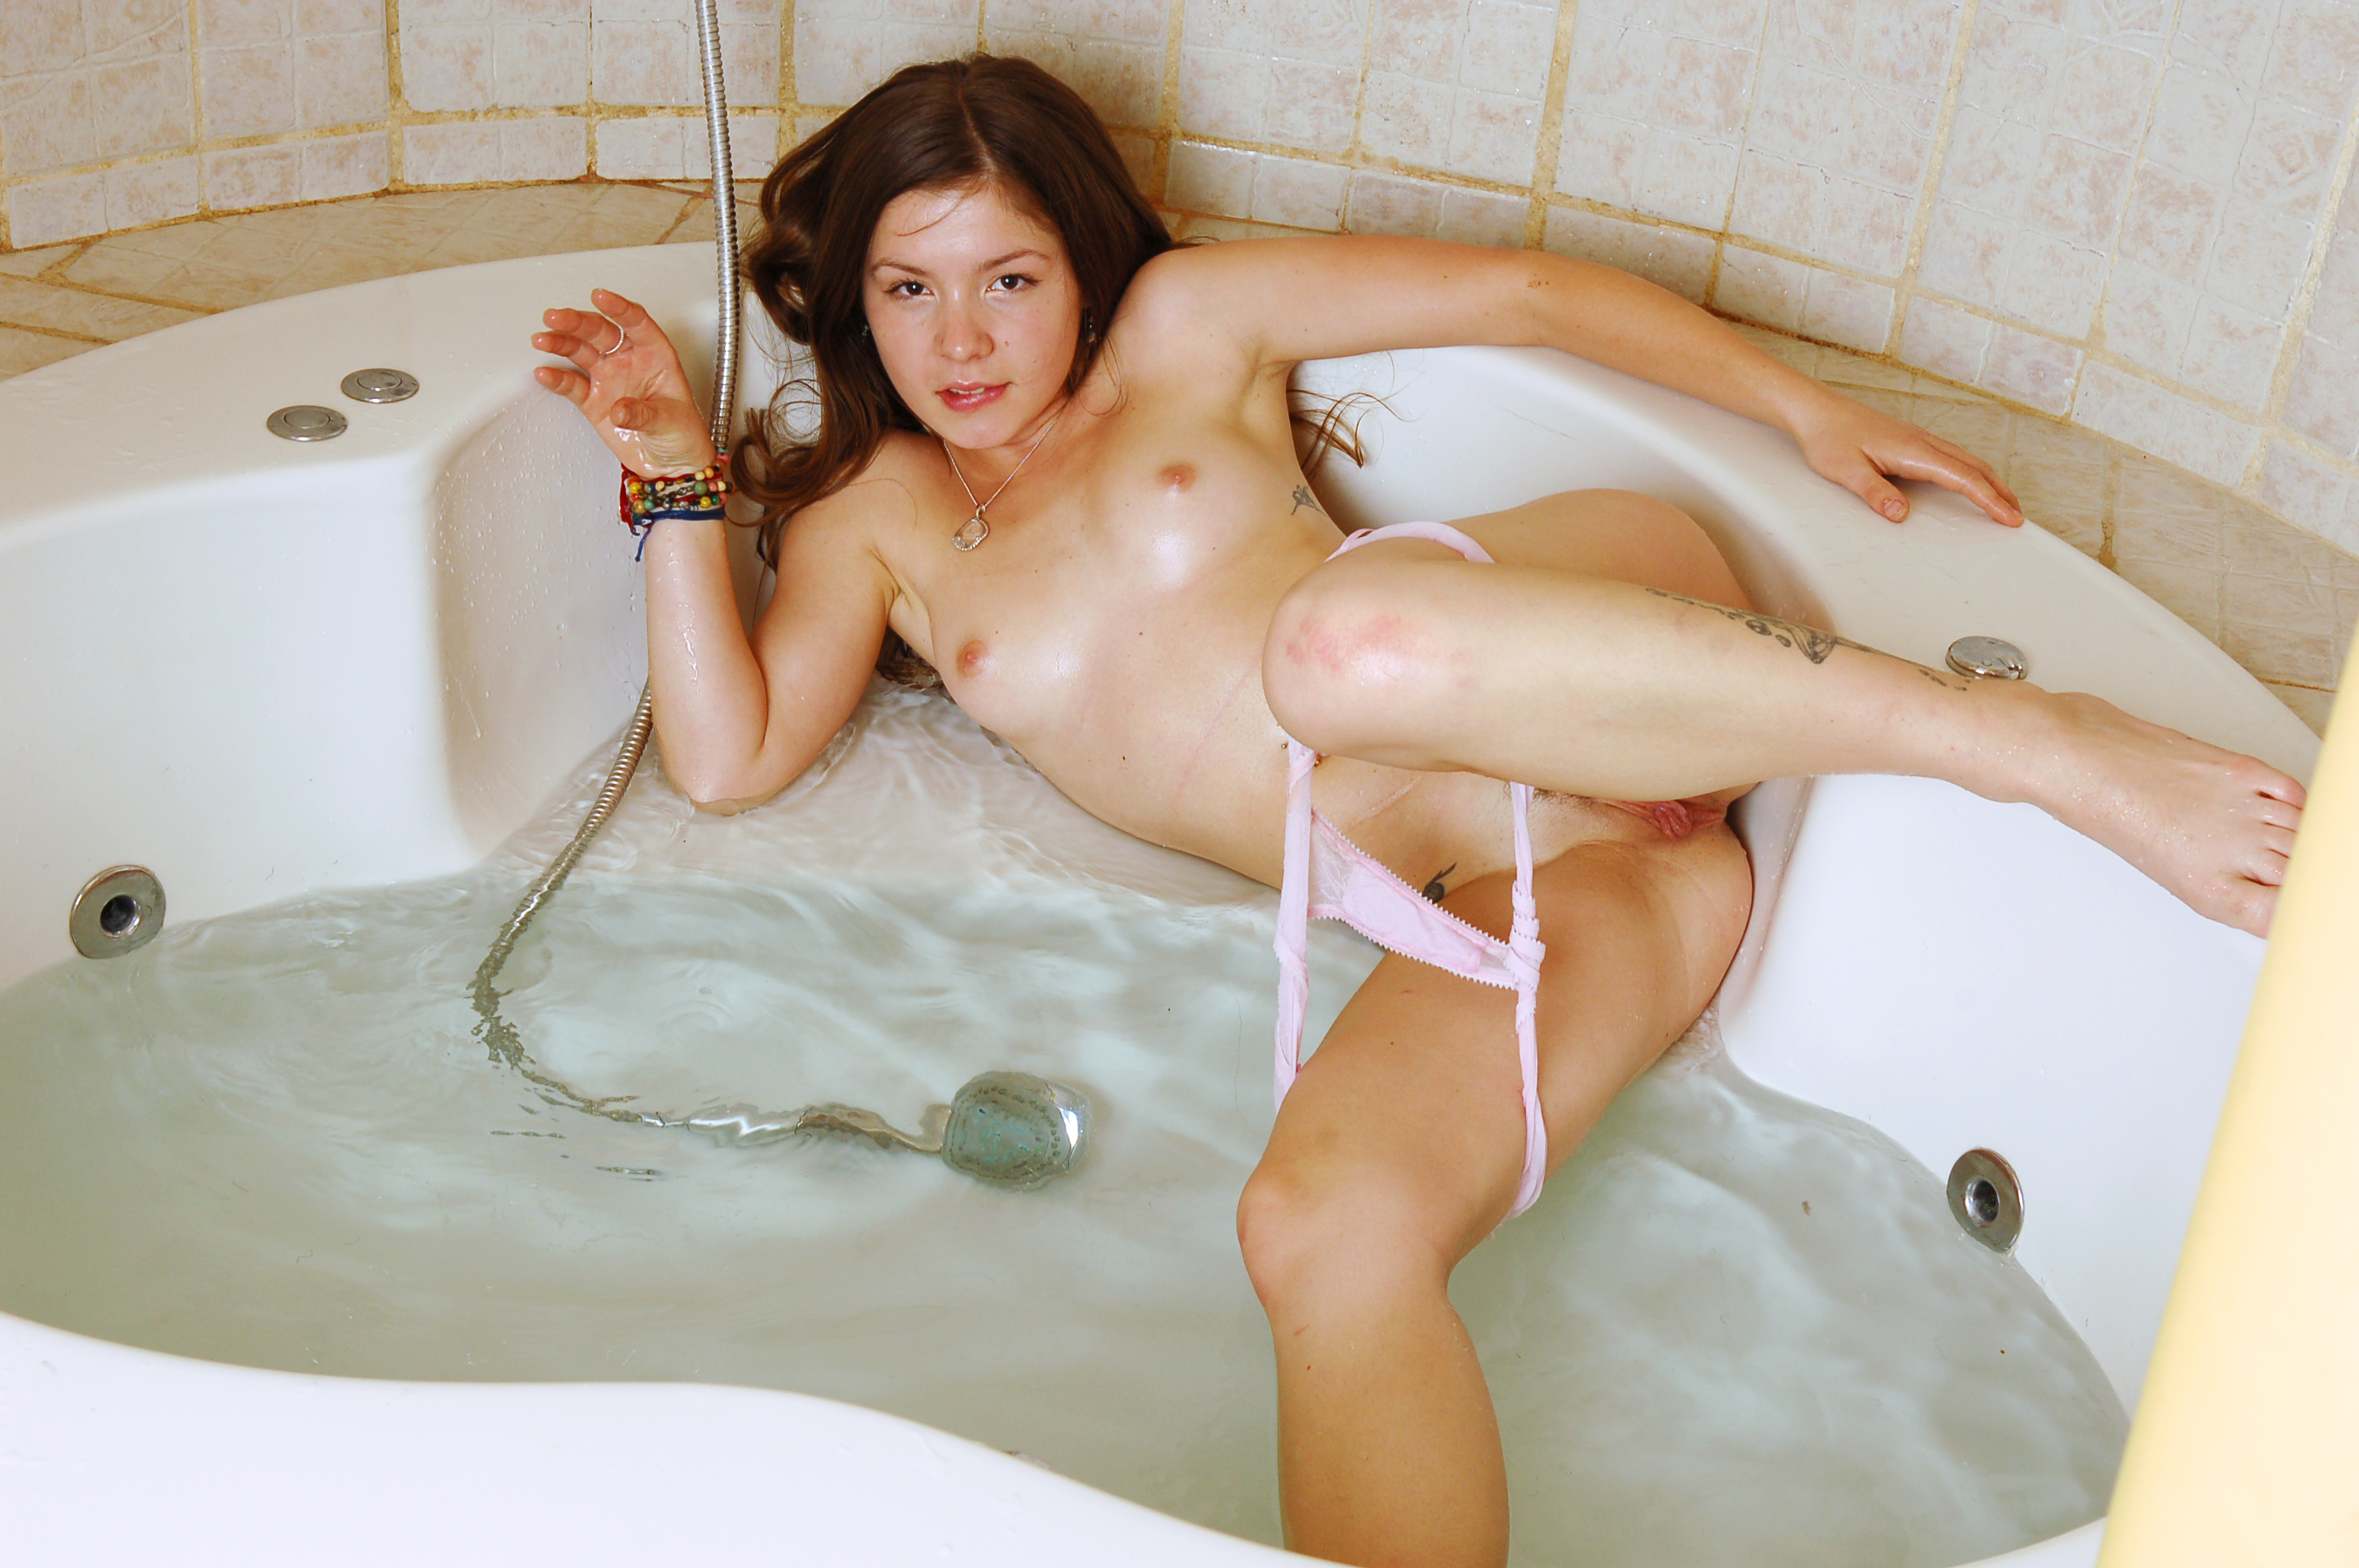 Naked In The Bath Tub 115